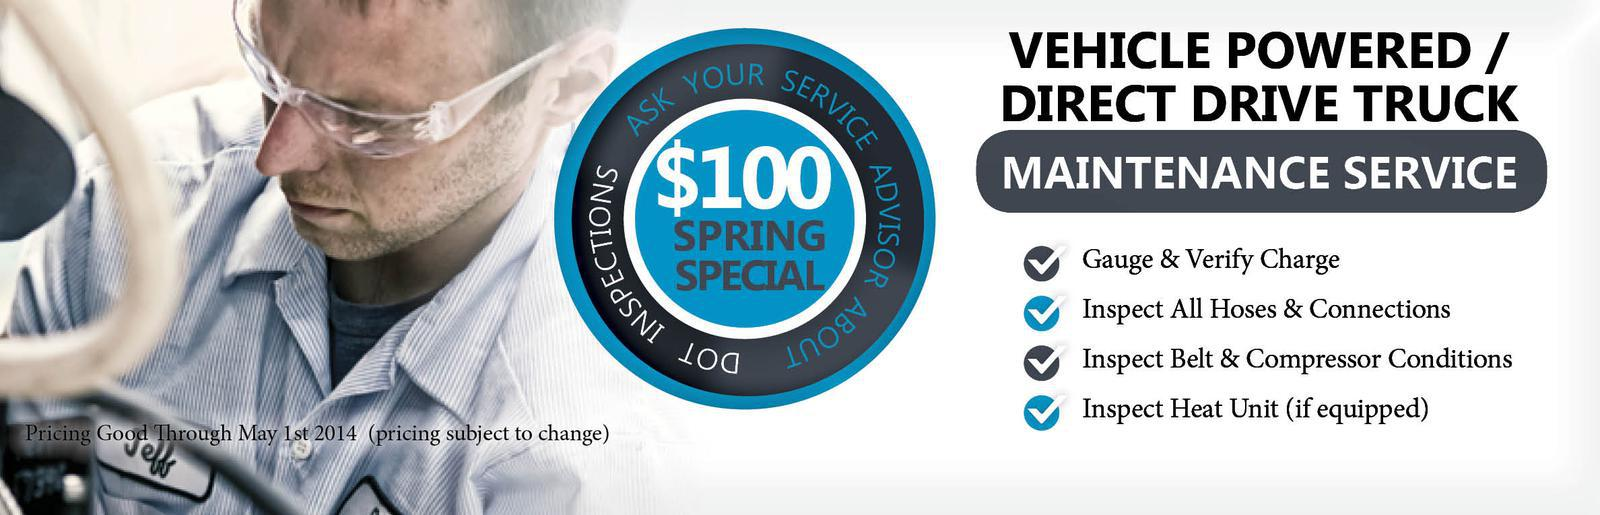 Vehicle Powered / Direct Drive Truck Maintenance Service Special : $100 Standard Maint.